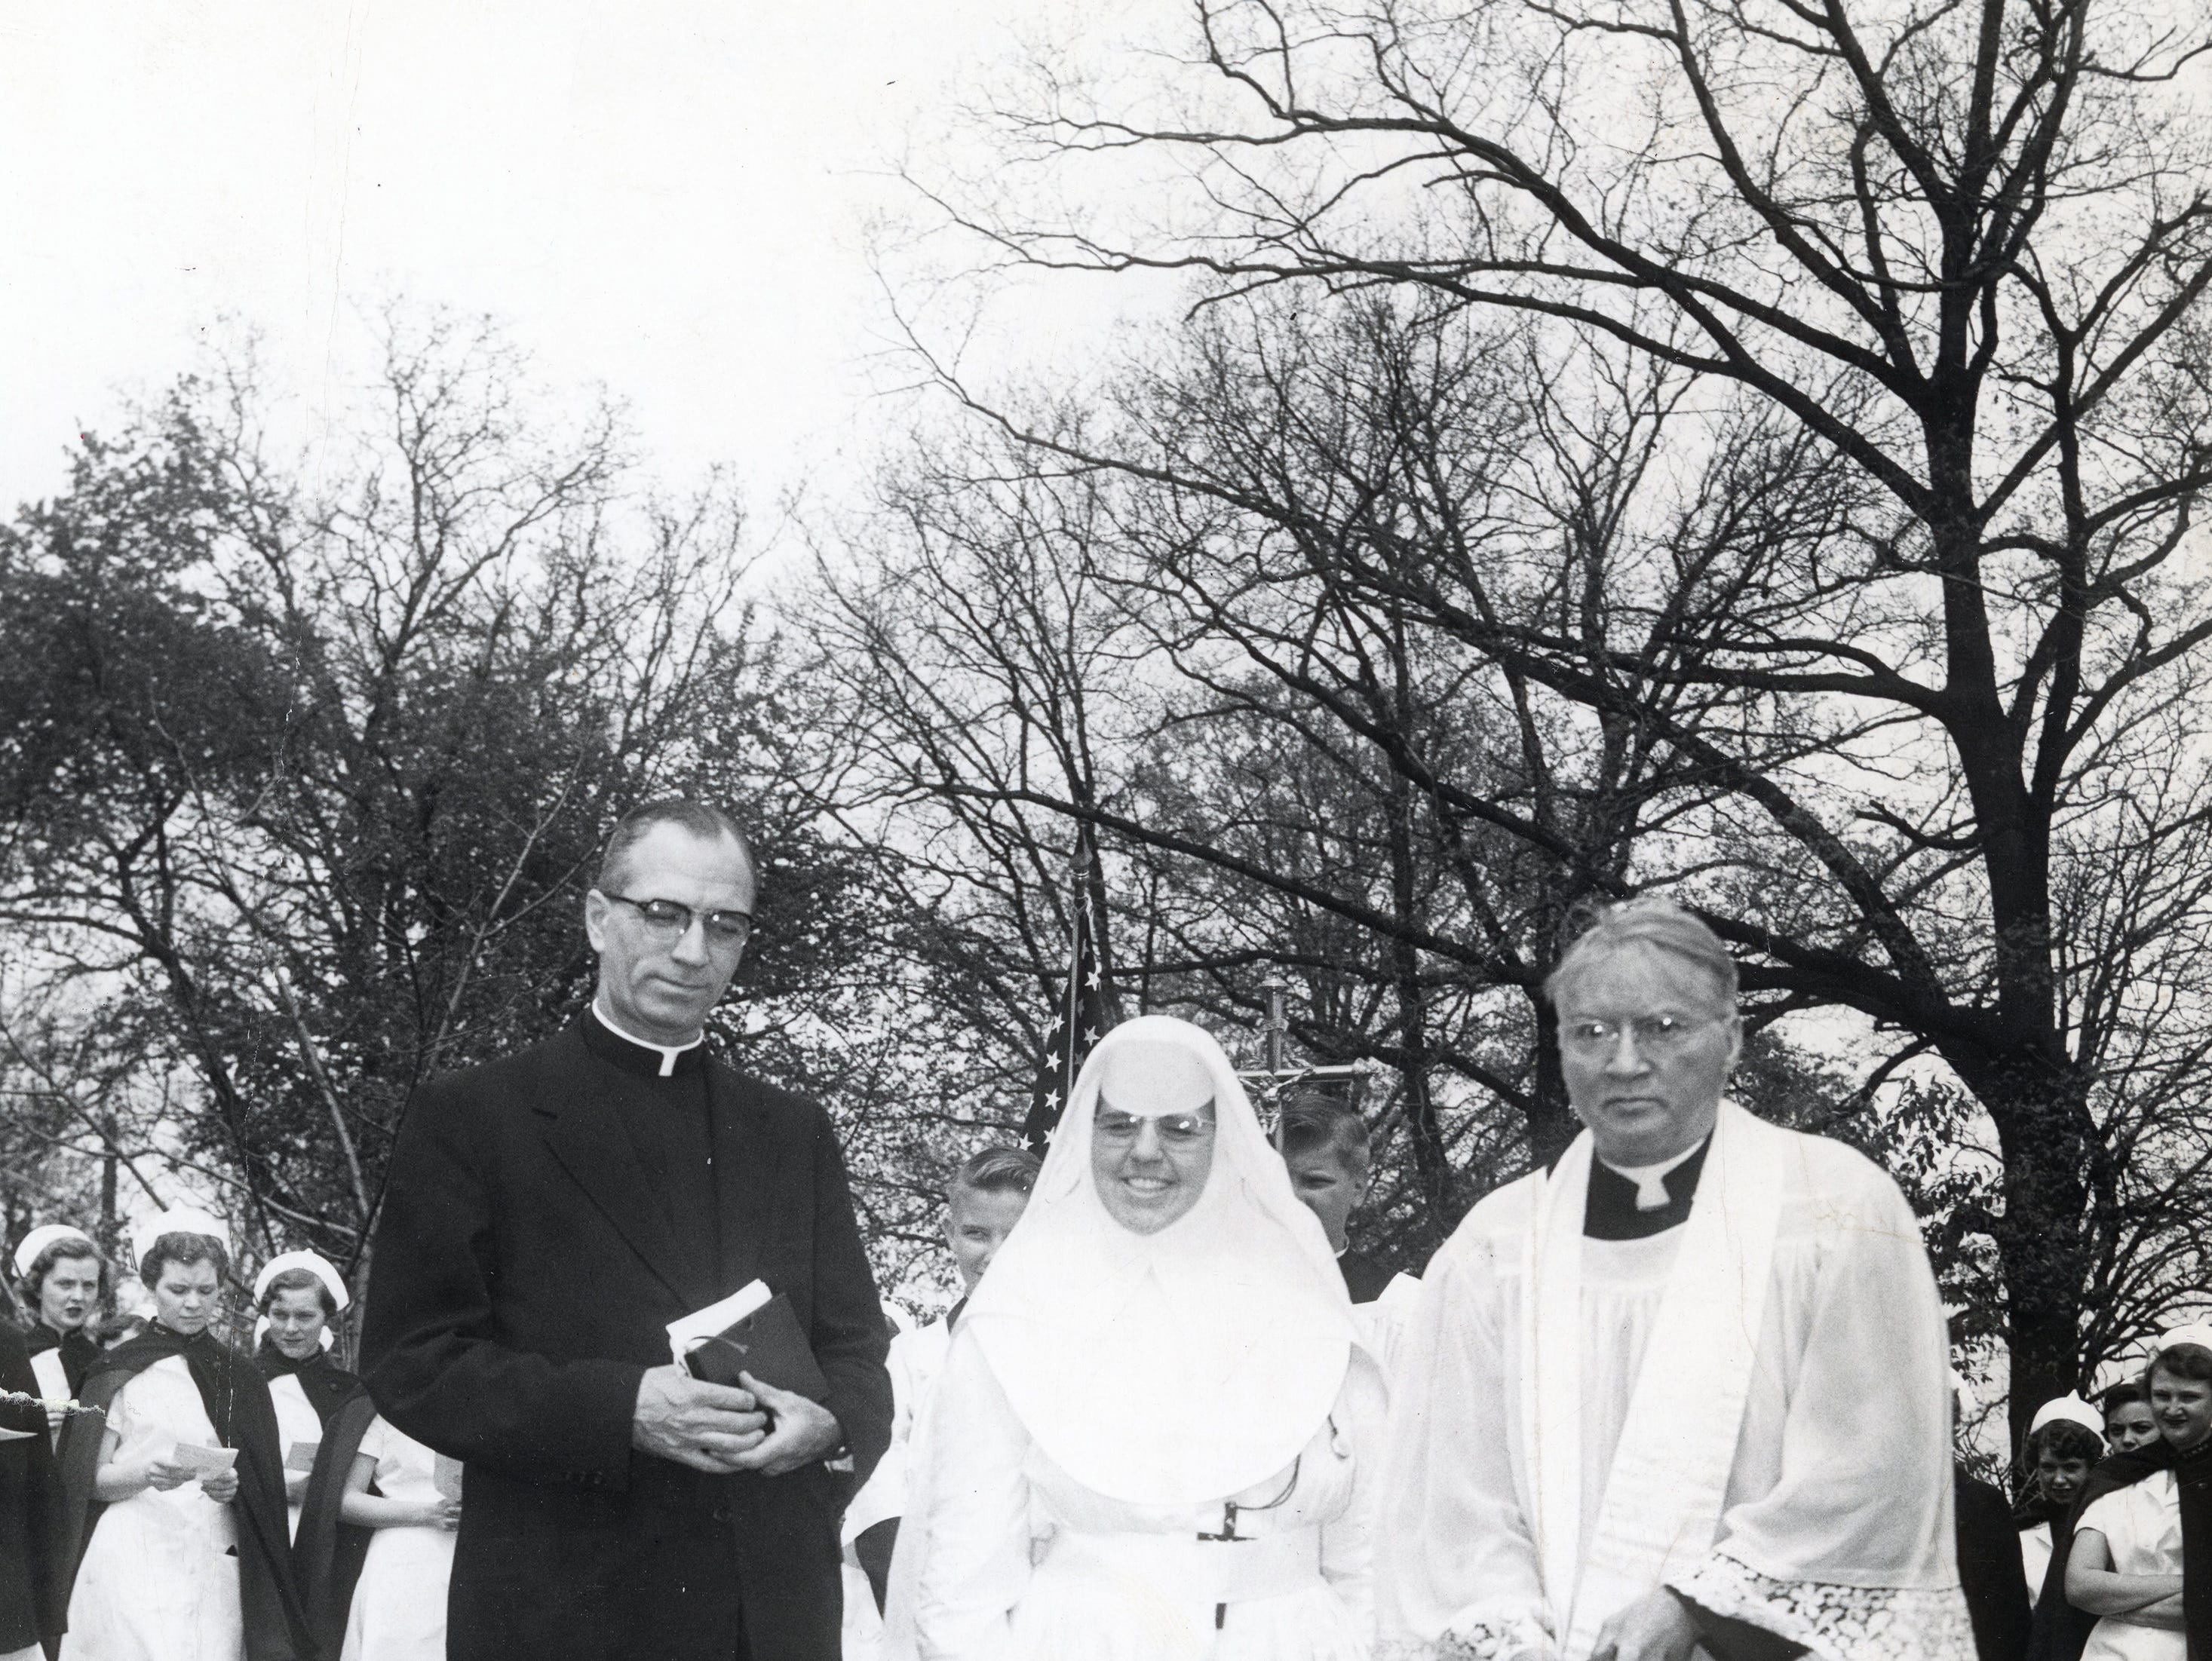 From left, Father Leo Baldinger, pastor of Holy Ghost Catholic Church, Sister Mary Annunciation, administrator of St. Mary's Memorial Hospital, and Father C.P. Wassem, chaplain of St. Mary's Medical Center in April 1955.